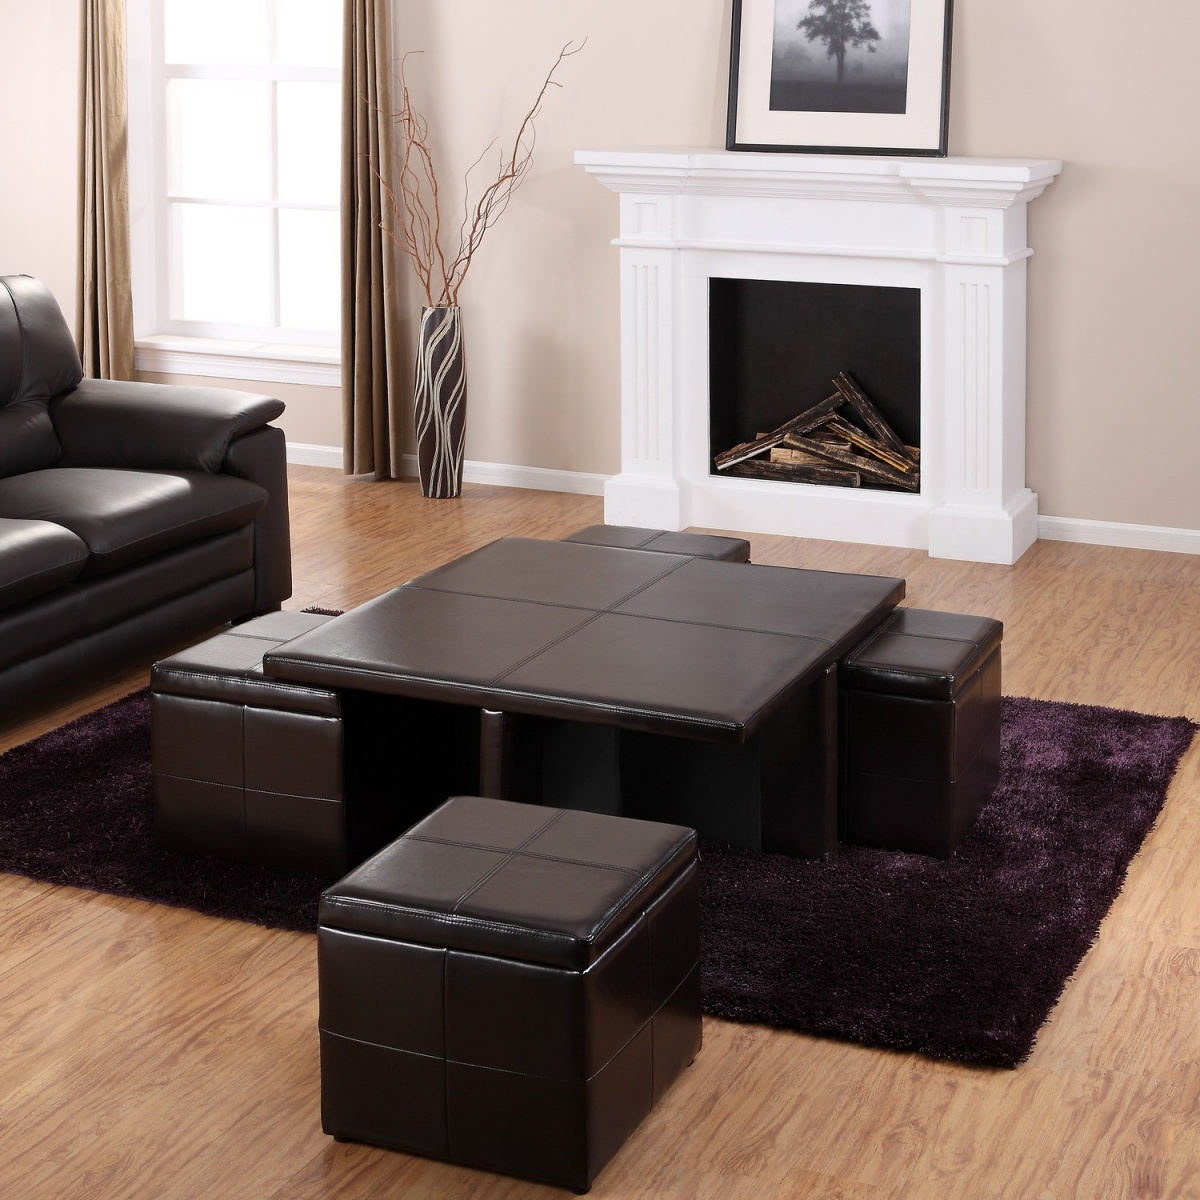 Get a compact and multi functional living room space by for Seating furniture living room